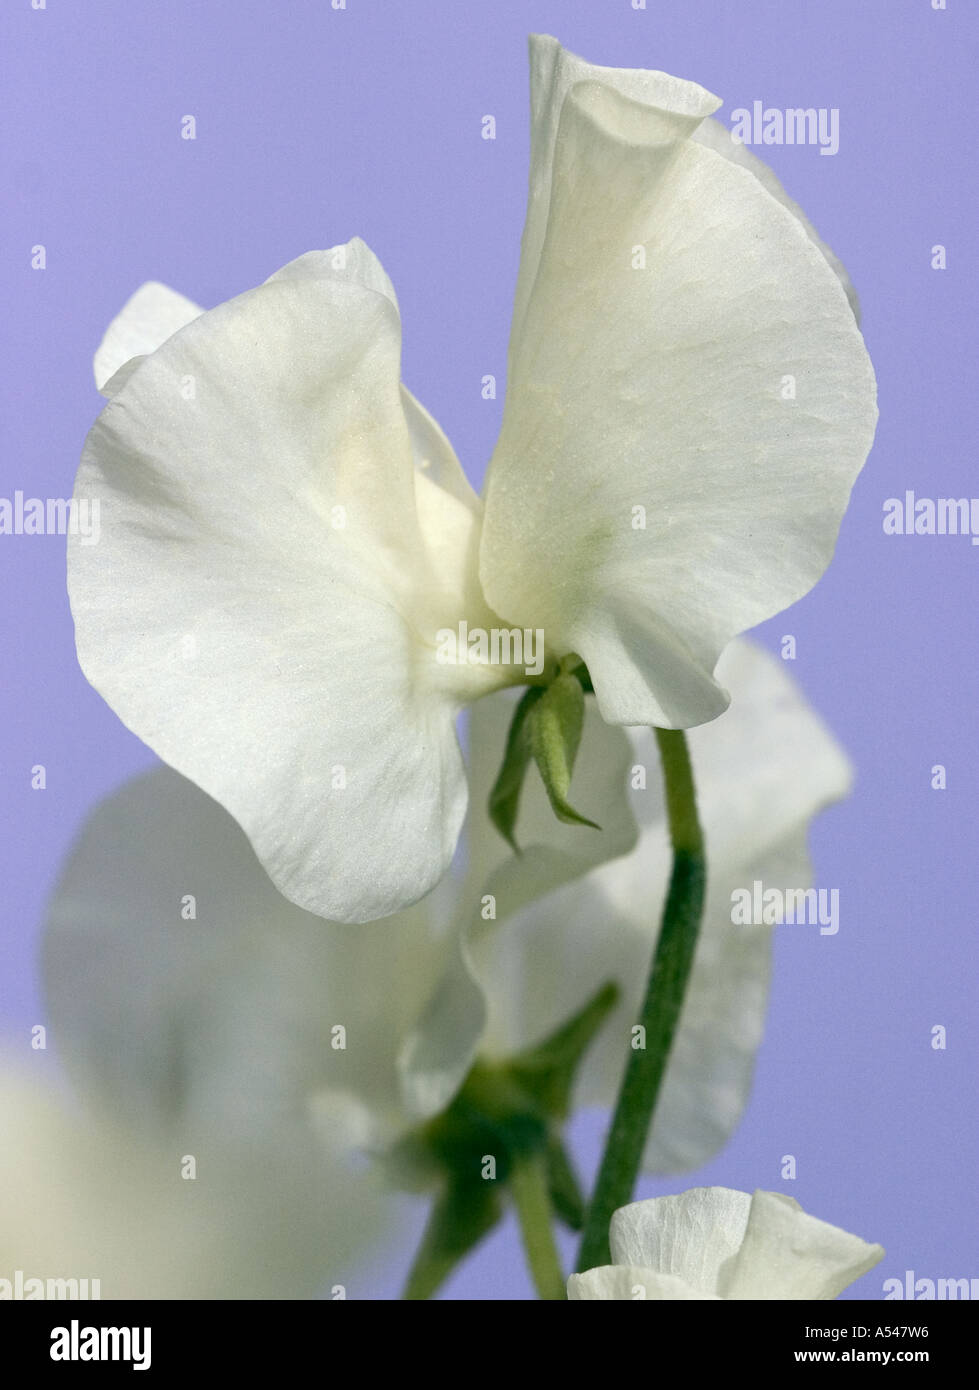 A Close Up Of White Sweet Pea Flowers Stock Photo 6395349 Alamy